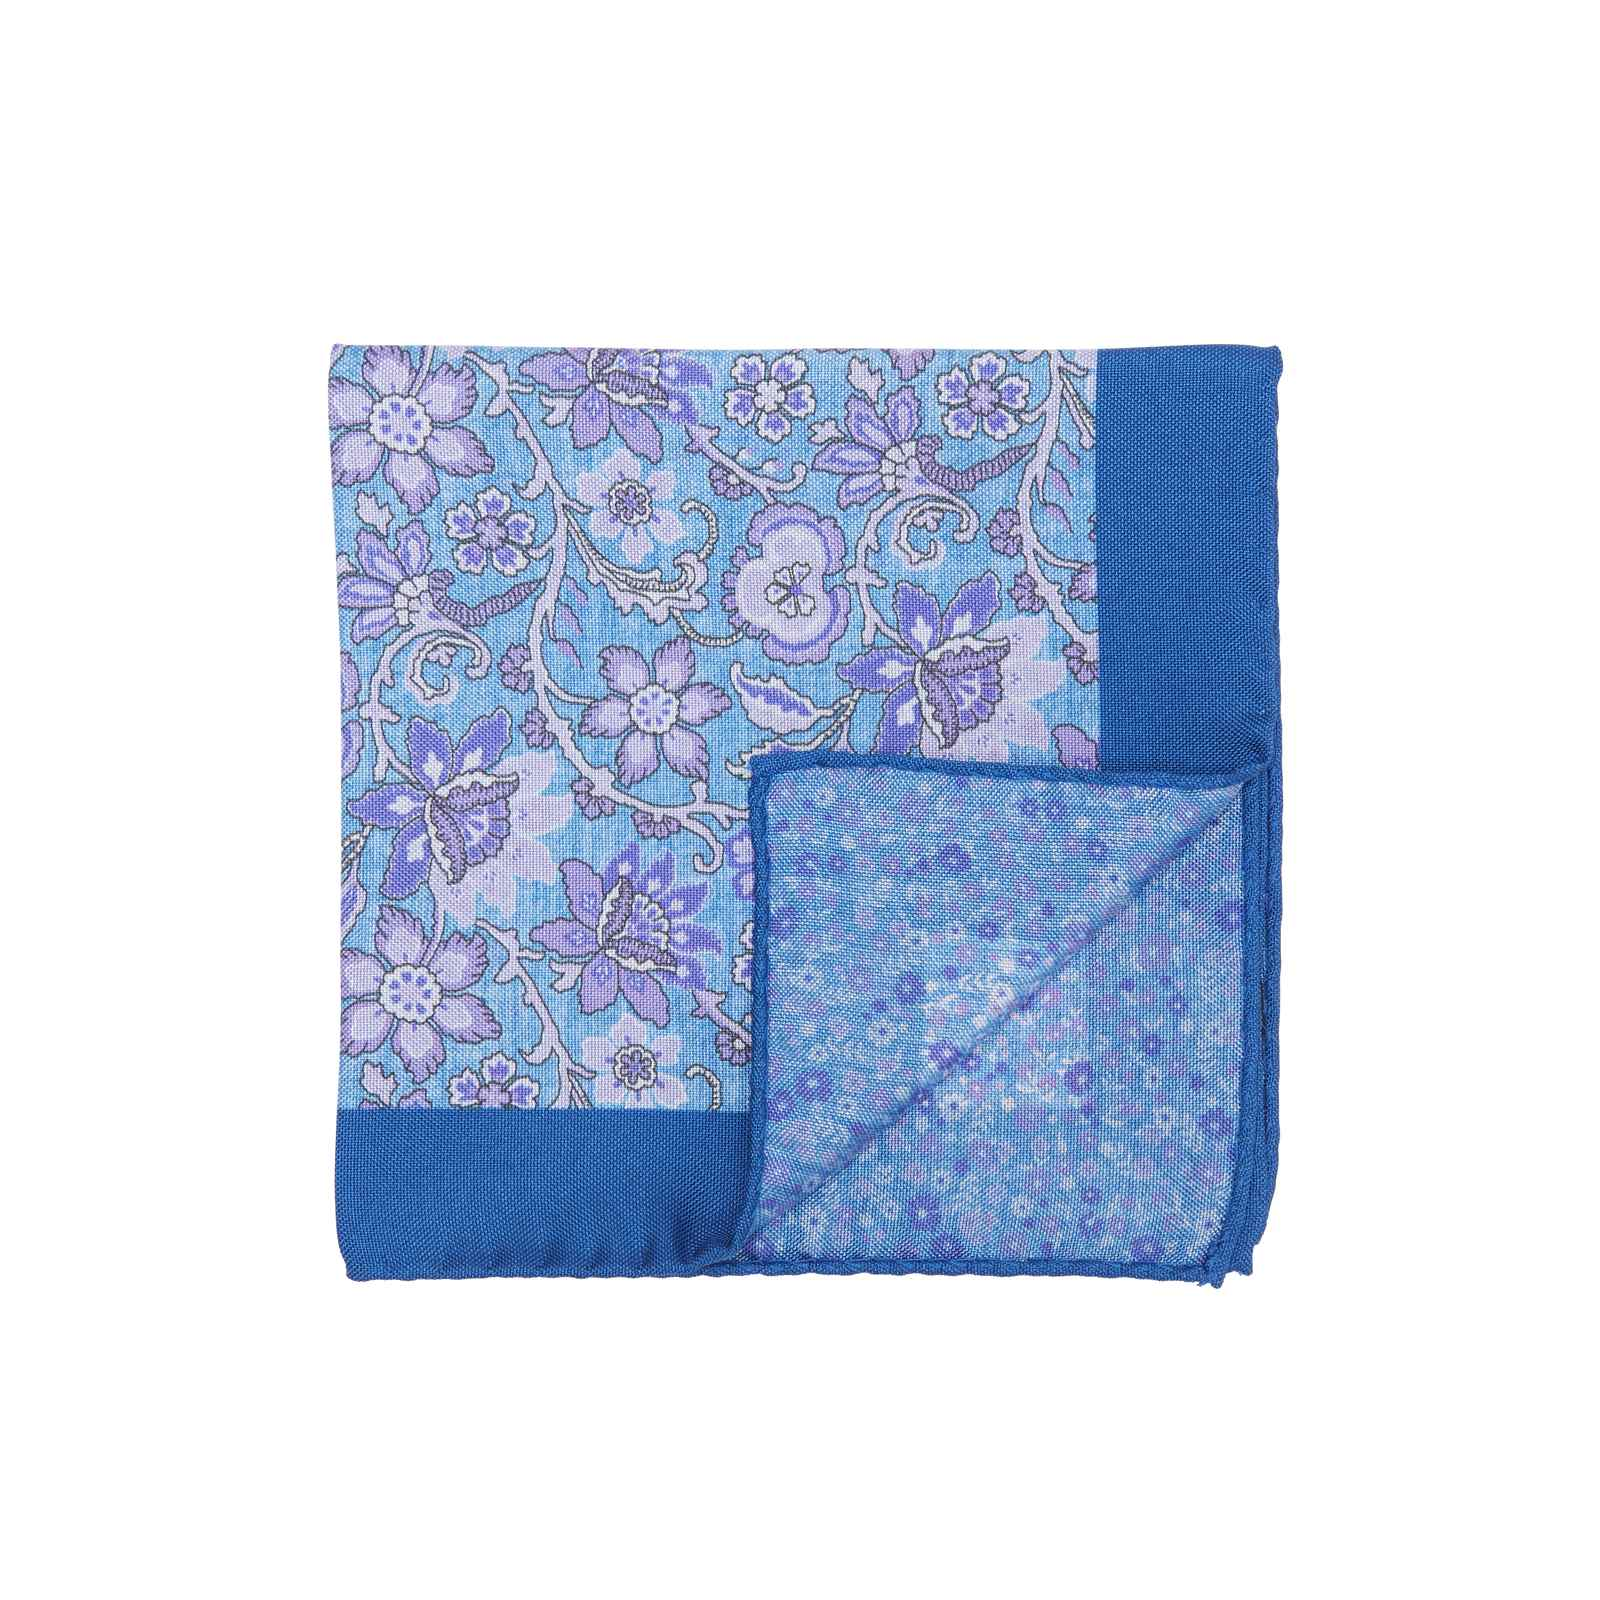 Blue and Purple Double Sided Pocket Square w/ Large and Small Flowers